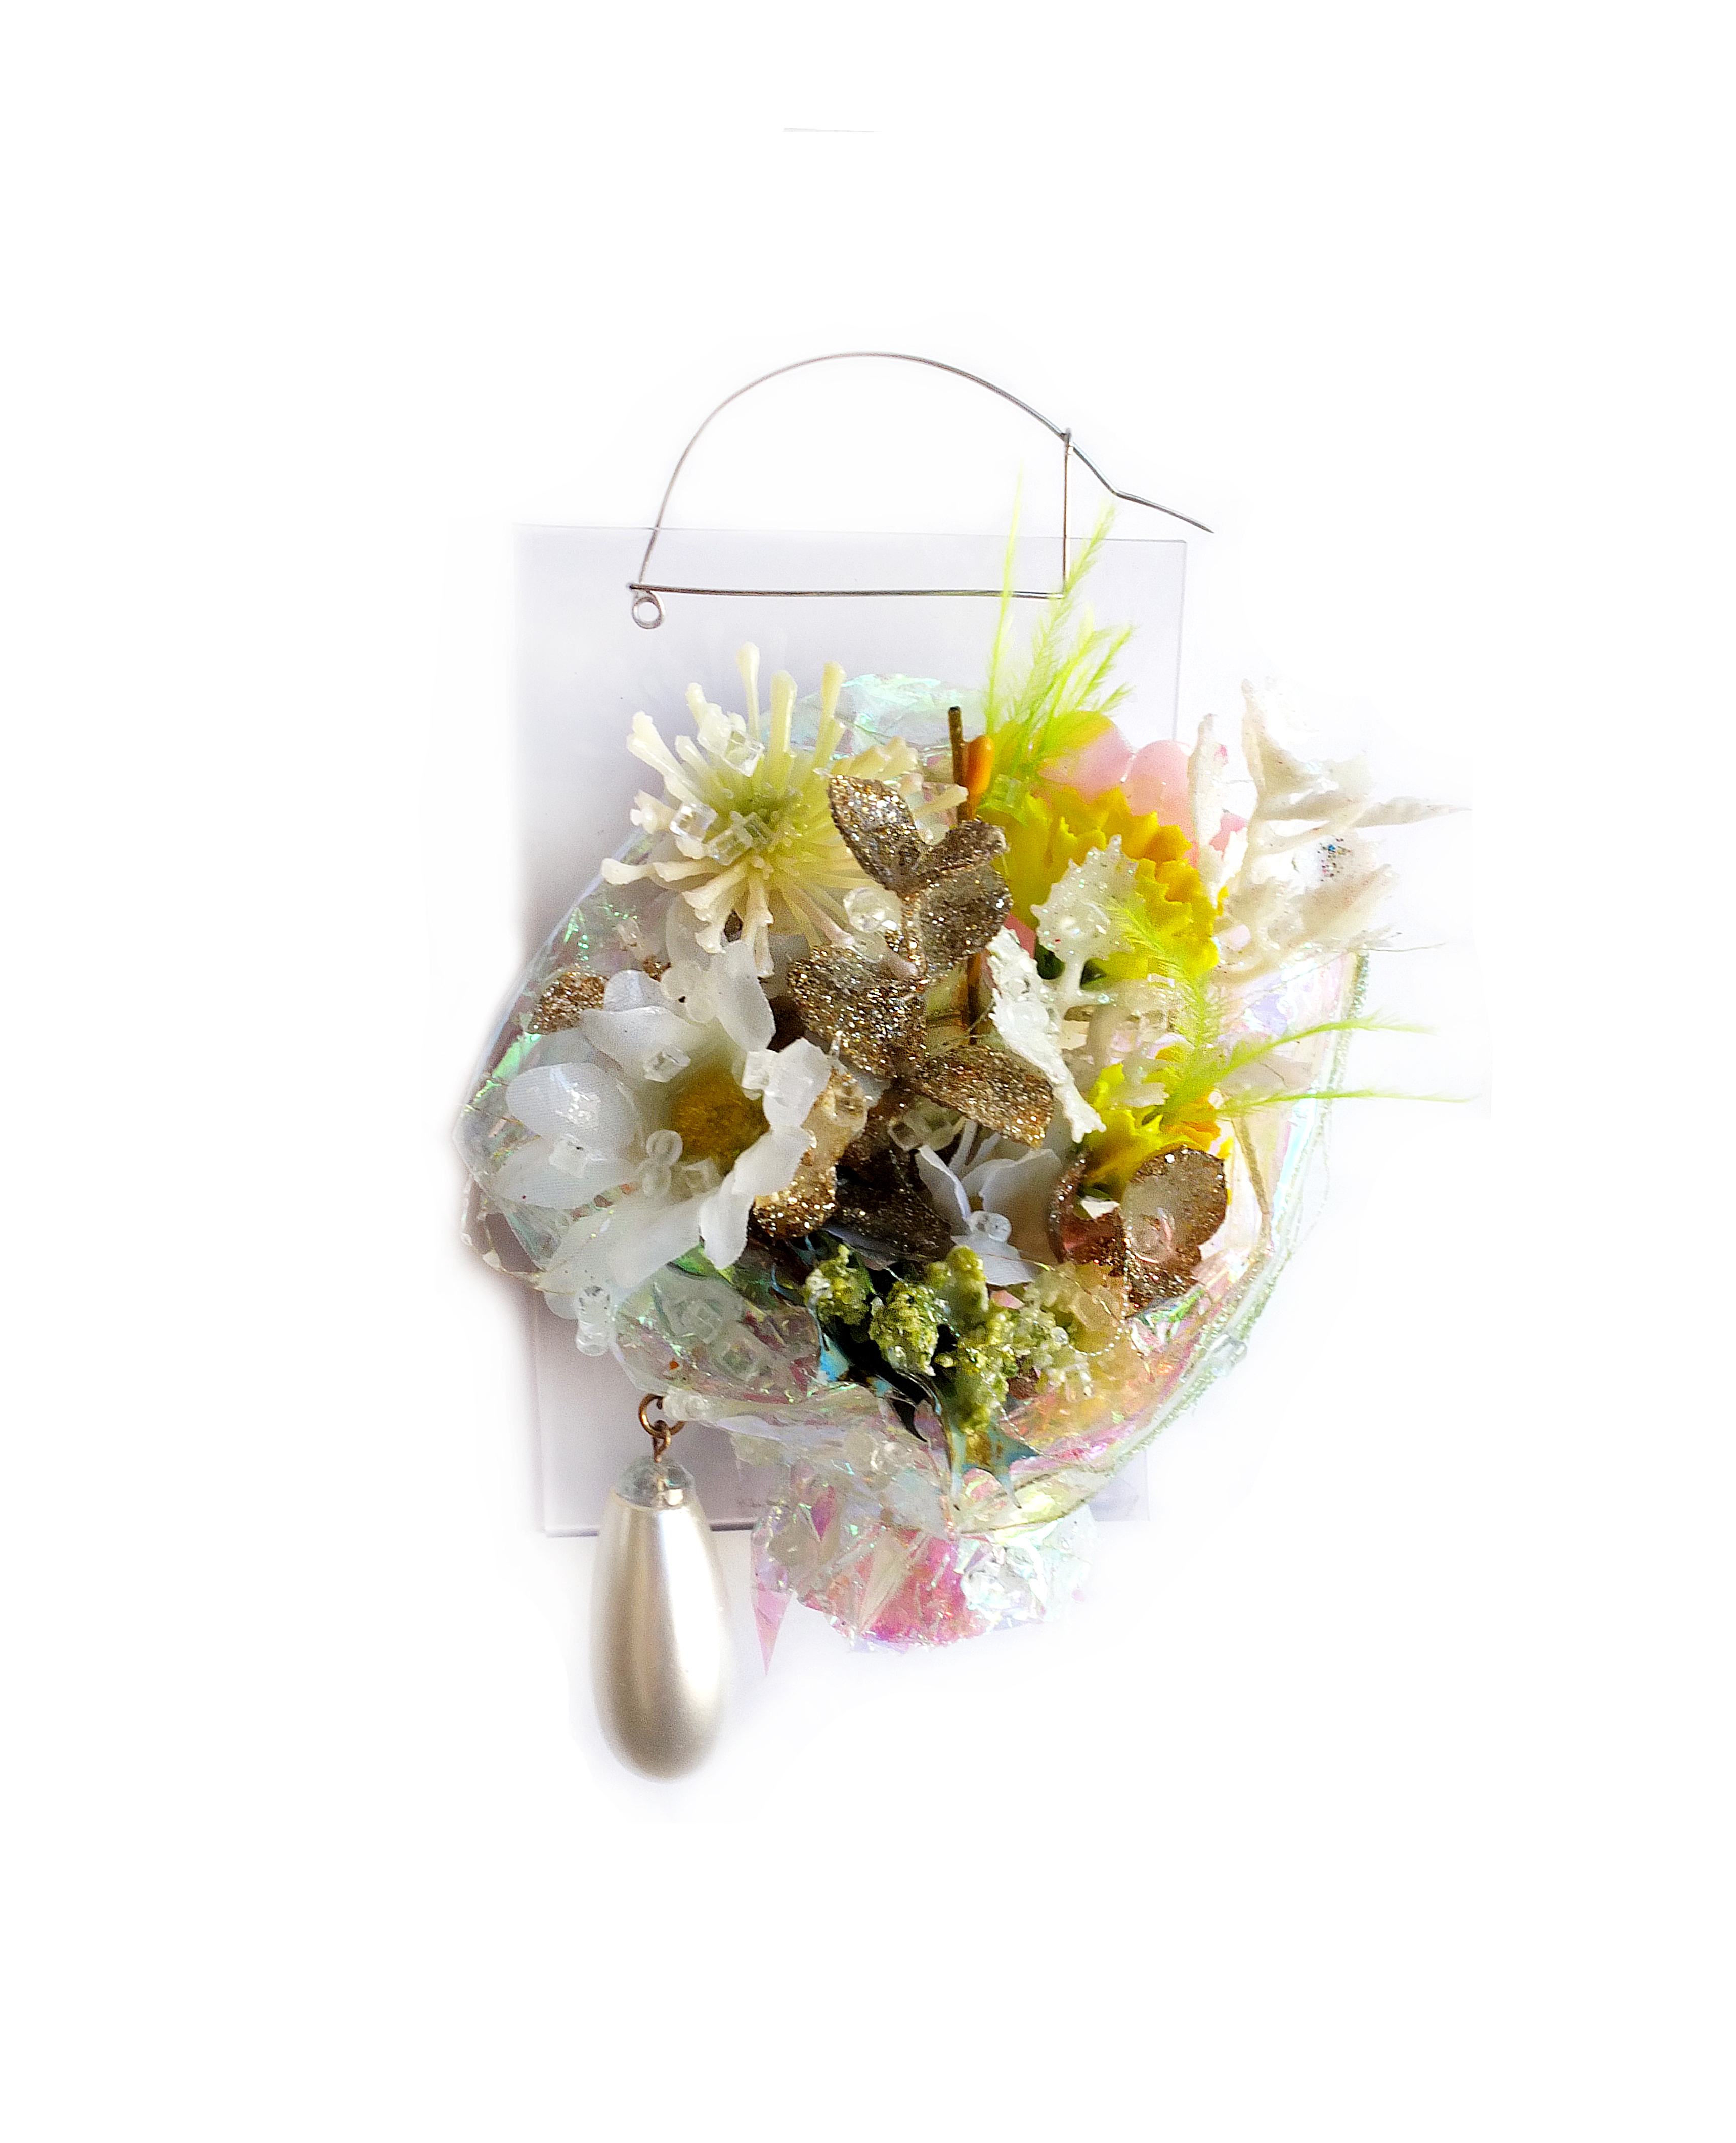 Nikki Couppee, Corsage Brooch III, (glow in the dark) found objects, rubber, steel